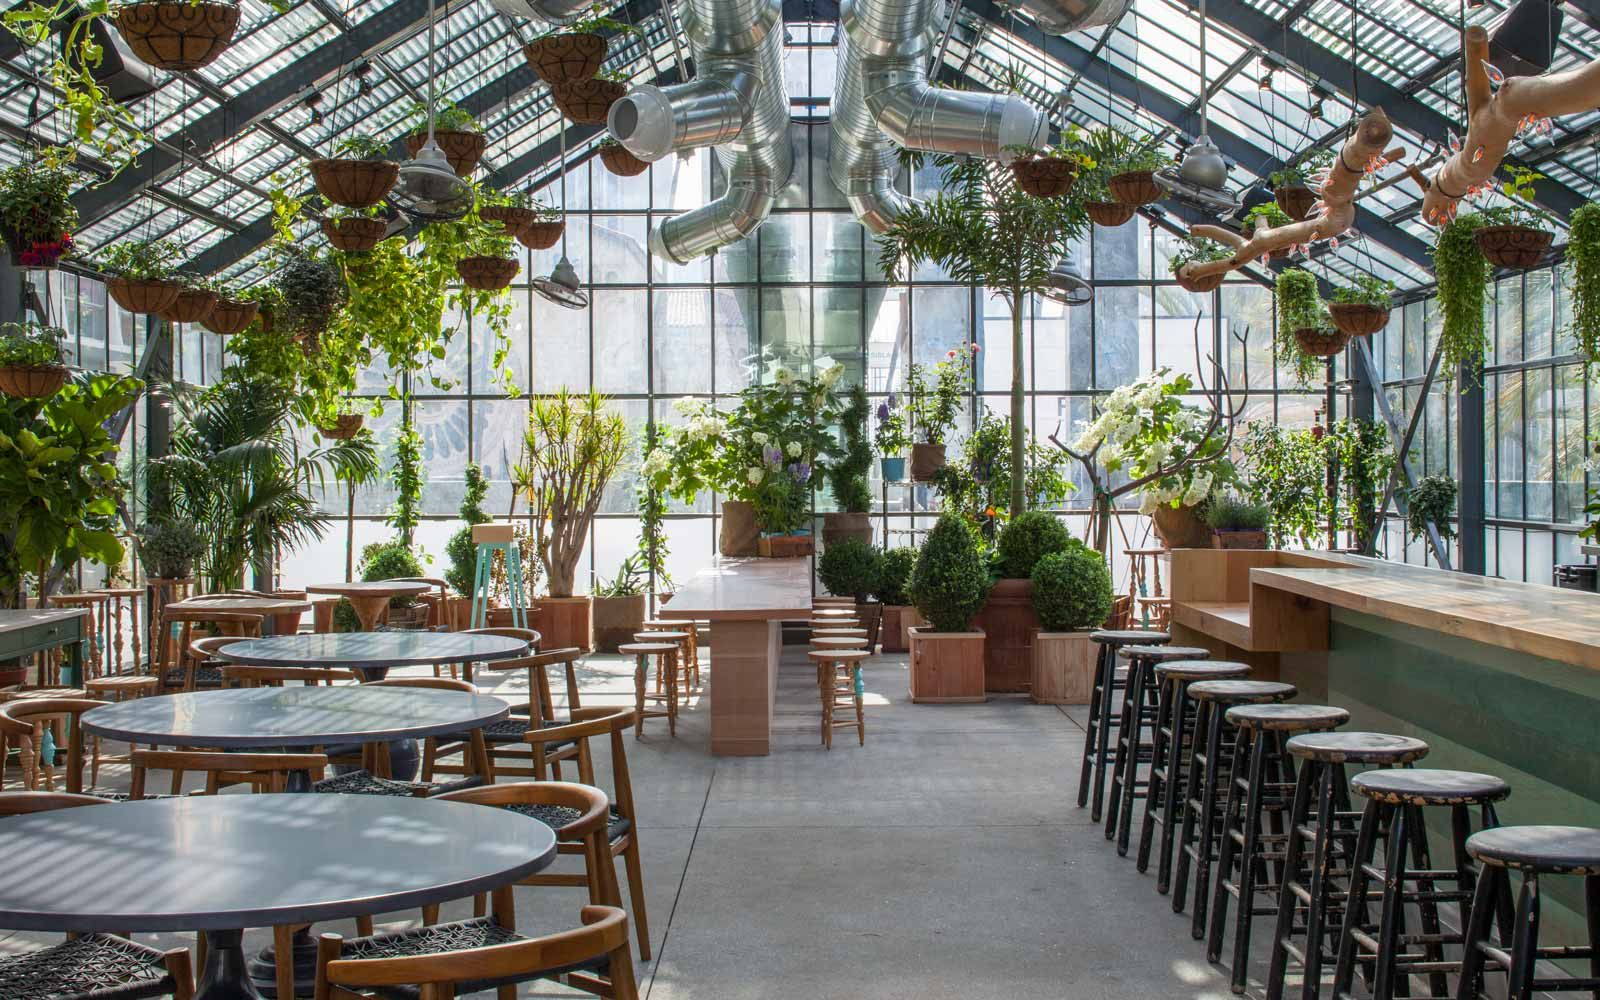 The Line Hotel Greenhouse A Beautifully Lit Interior With